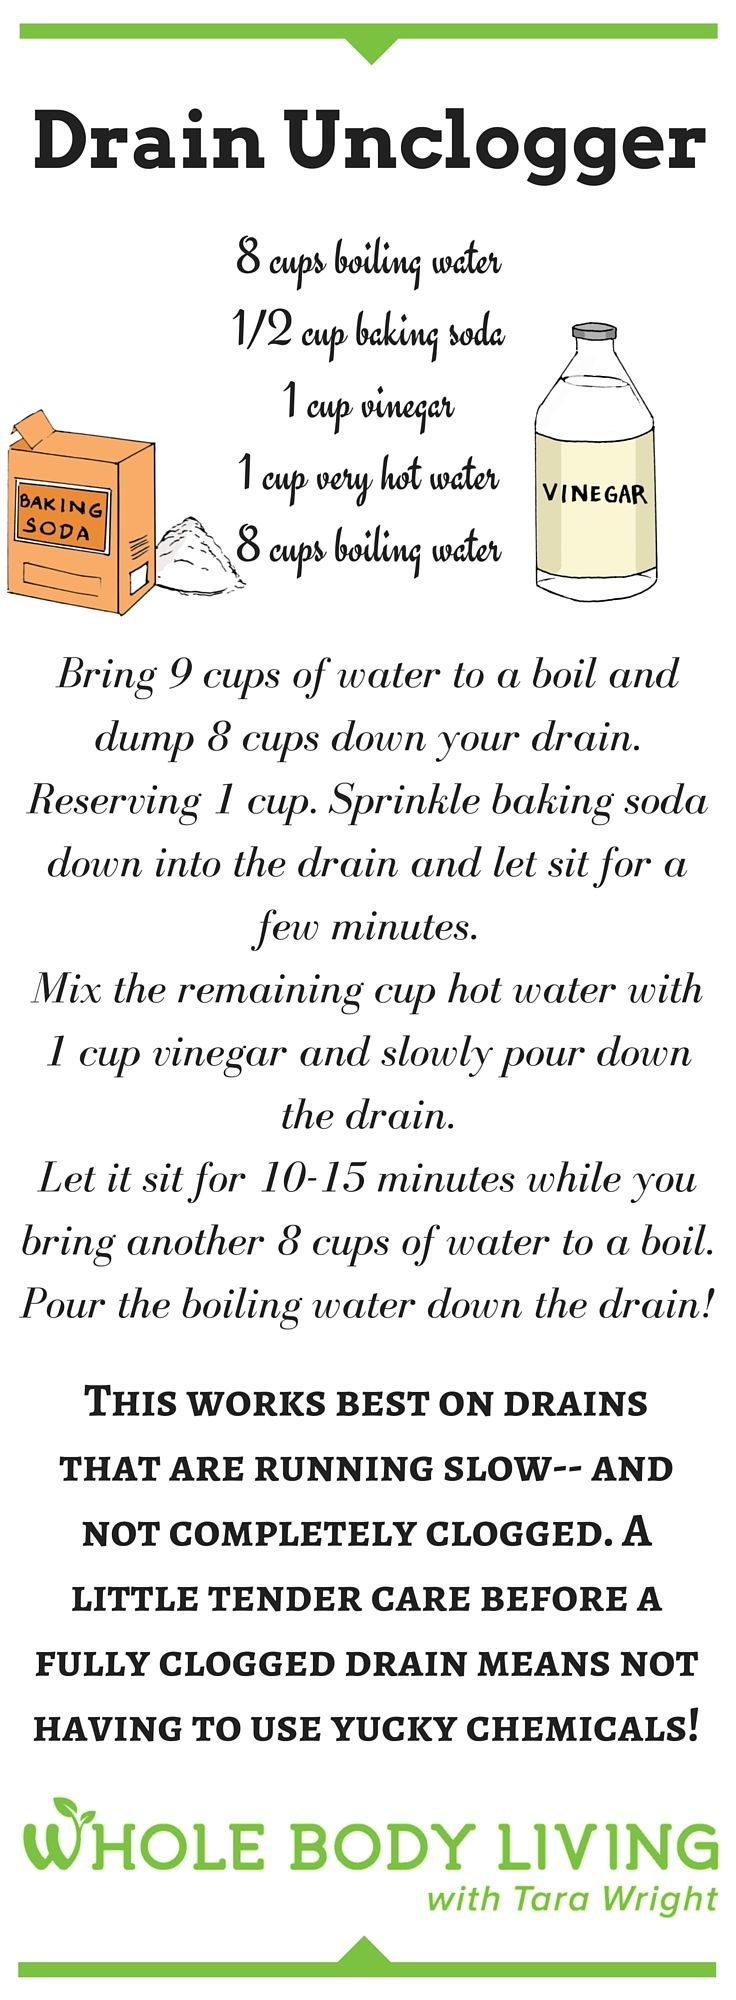 DIY Drain Unclogger - http://wholebodyliving.com/diy-drain-unclogger/ -Whole…